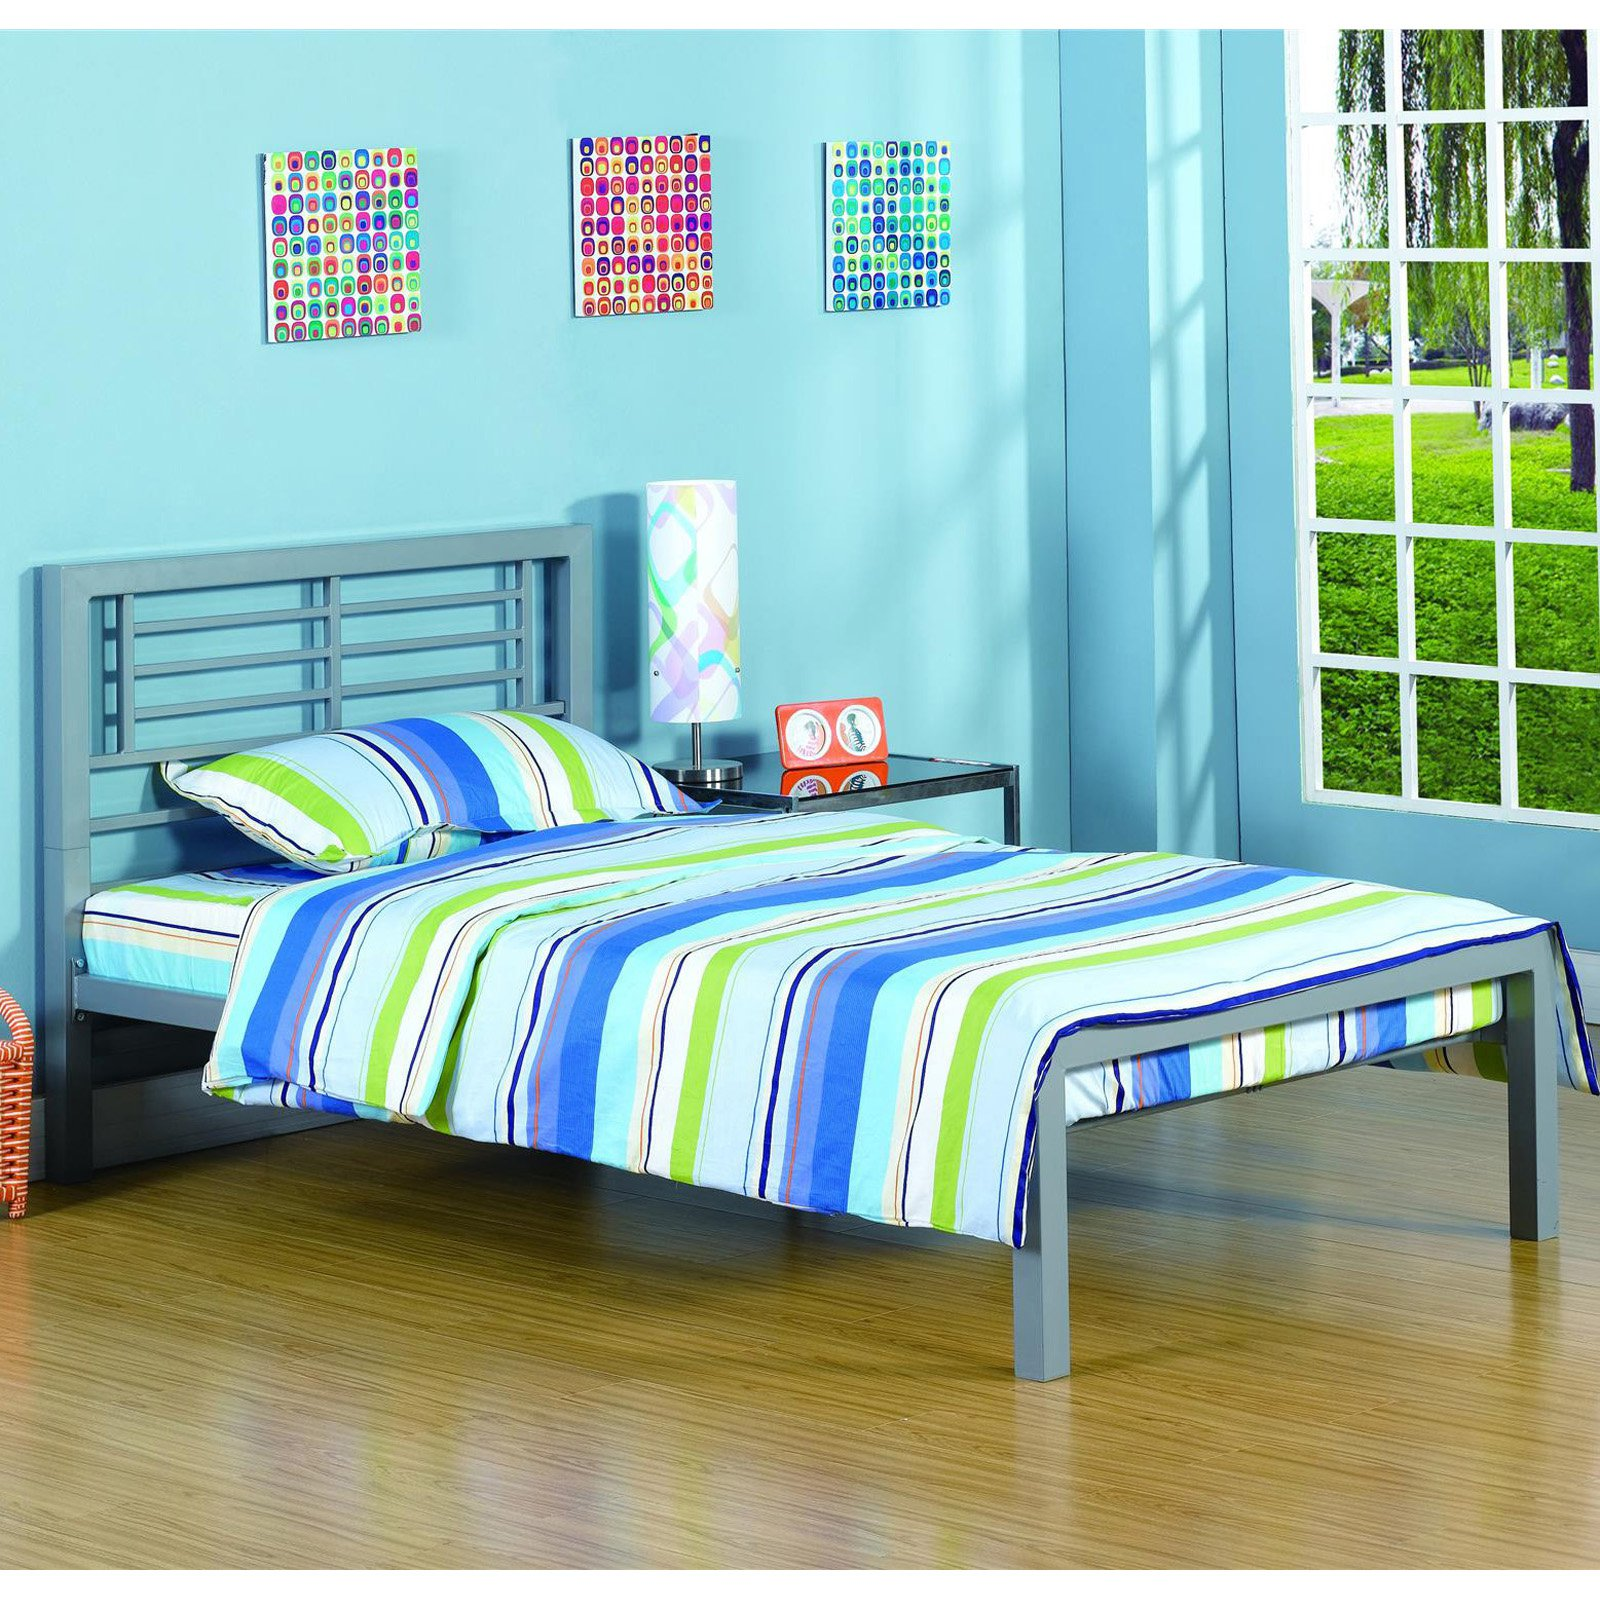 Your Zone Twin Platform Bed Silver Metal twin bed frame